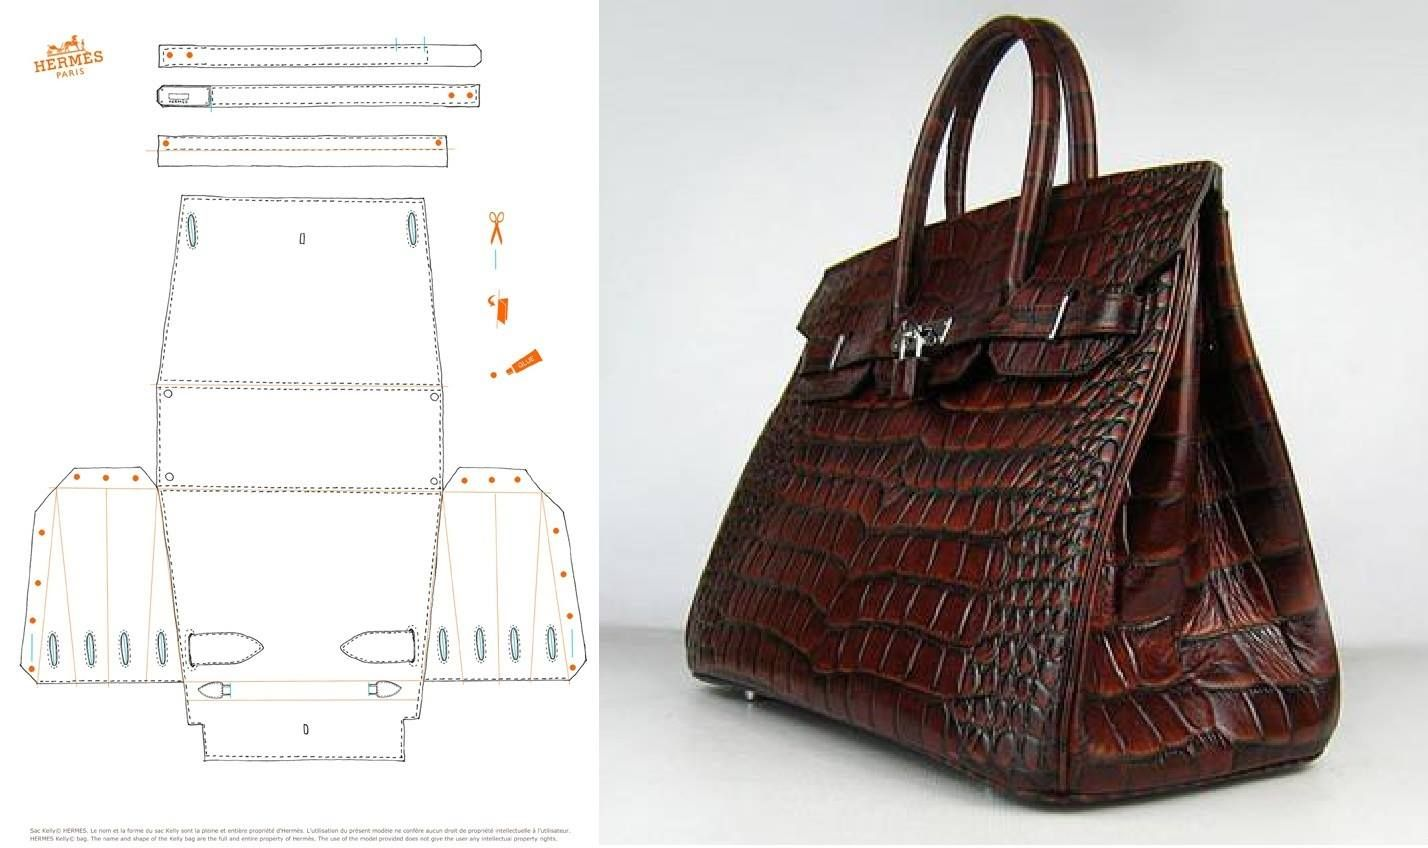 photo only for Hermes bag. Believe this was for a paper version but ...